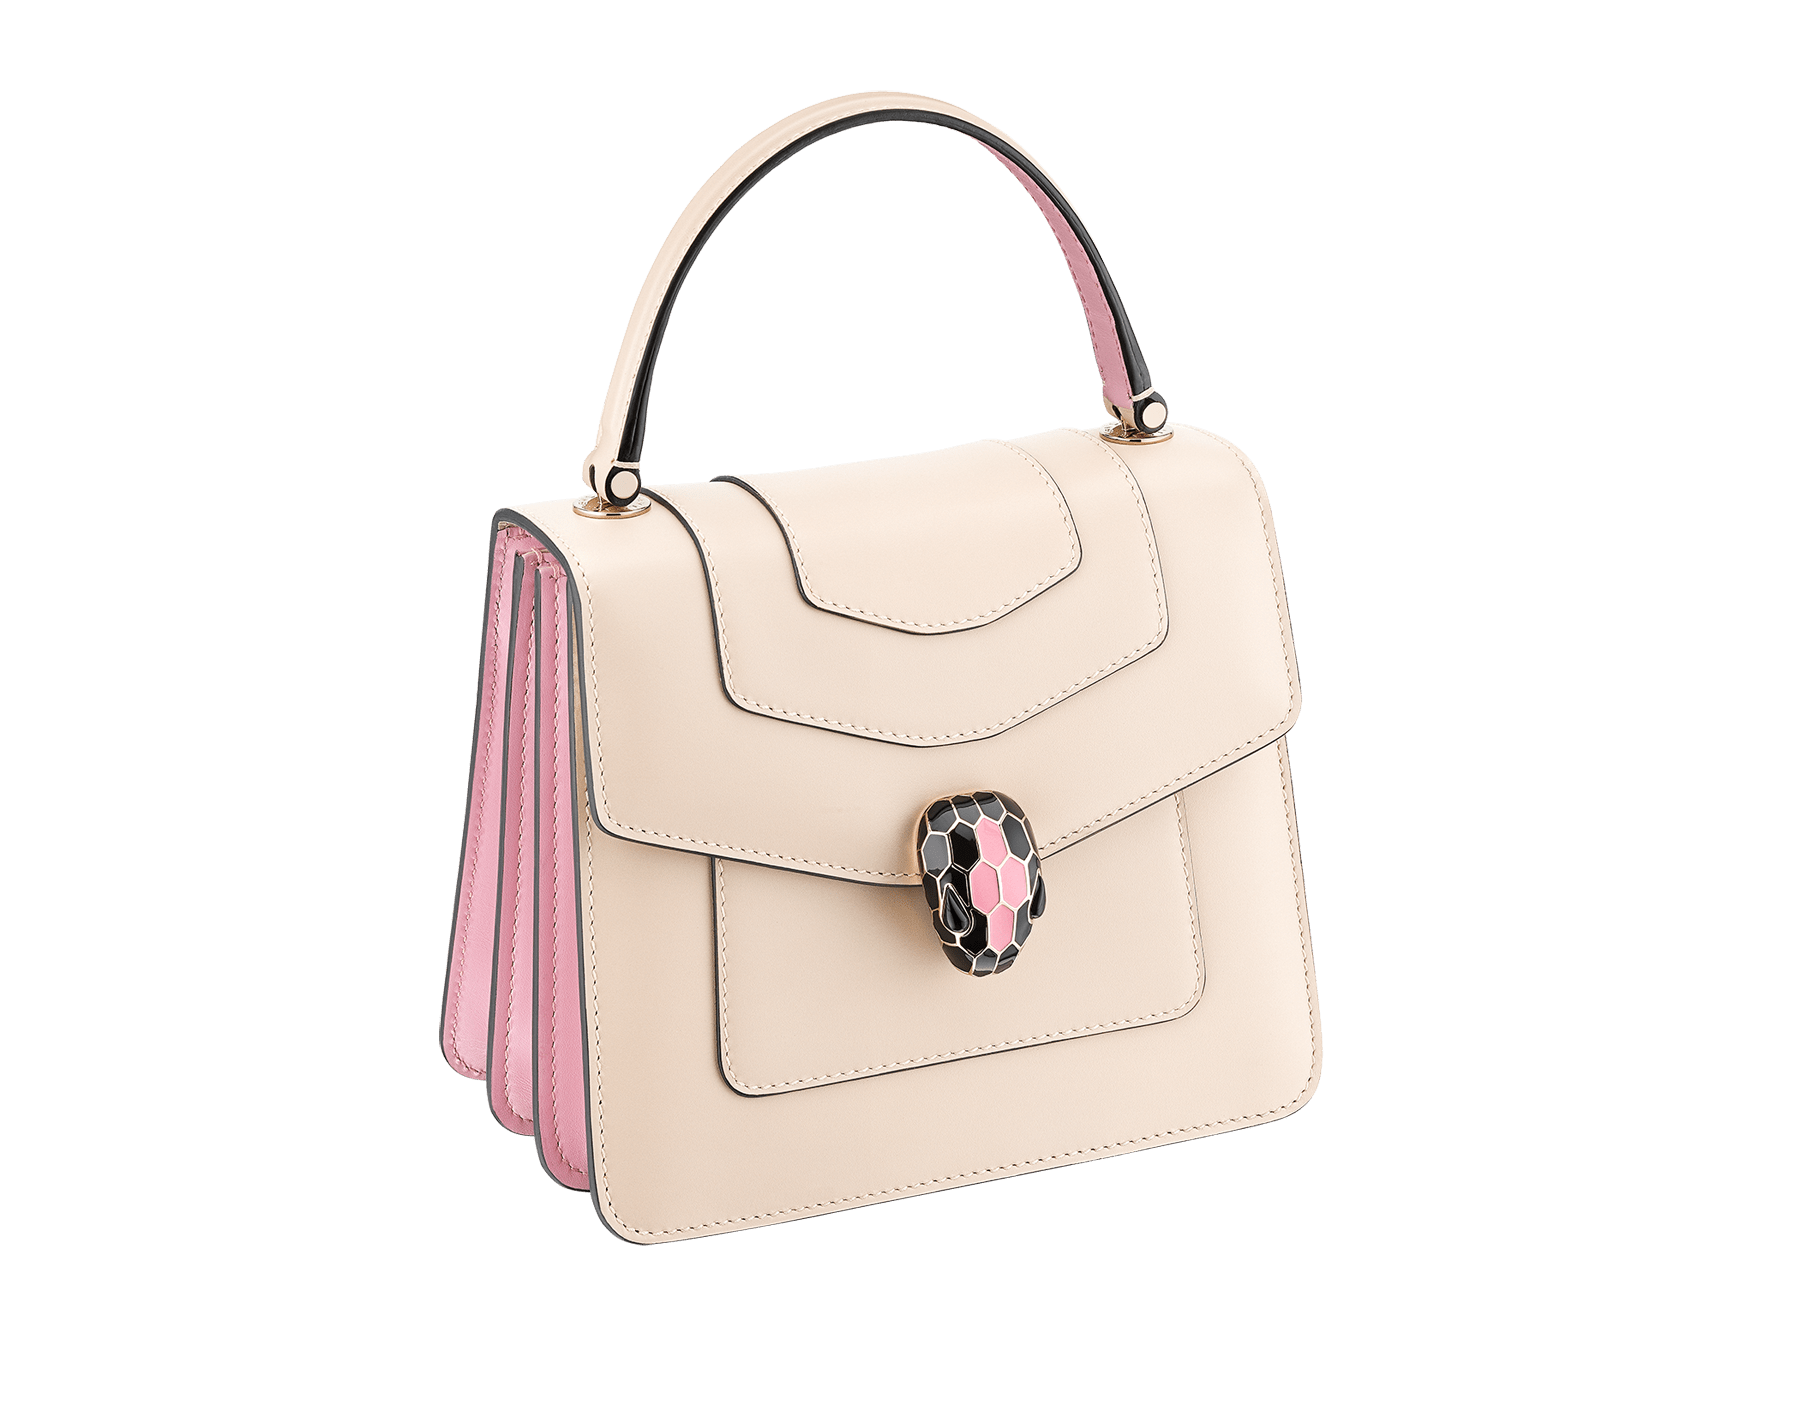 """Serpenti Forever"" crossbody bag with milky opal calf leather body and flamingo quartz calf leather sides. Iconic snakehead closure in light gold-plated brass enriched with milky opal and black enamel and black onyx eyes. 287978 image 2"